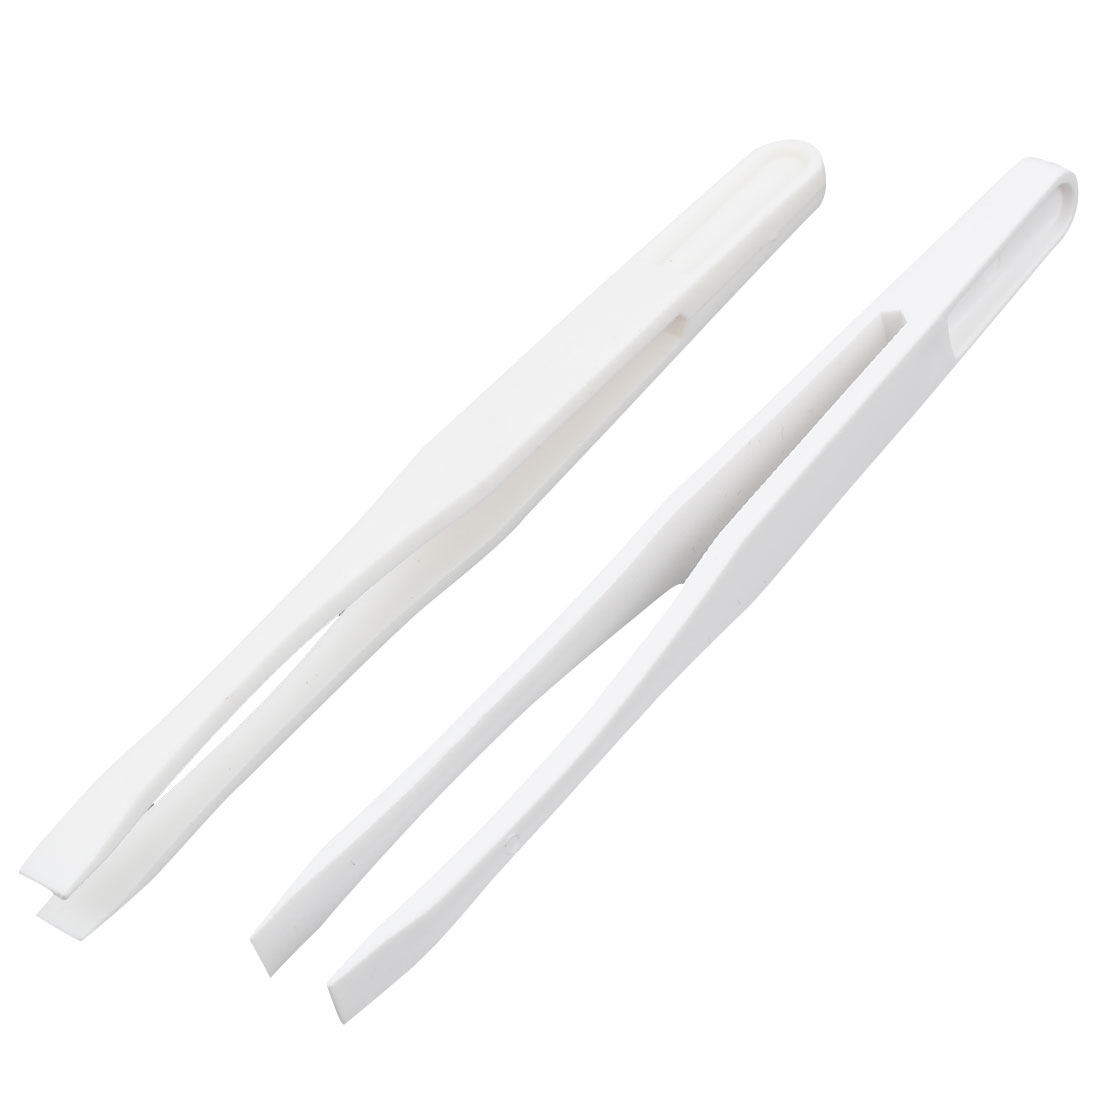 "2pcs 0.24"" Flat Tip White Plastic Anti Static Tweezer 12cm Length"